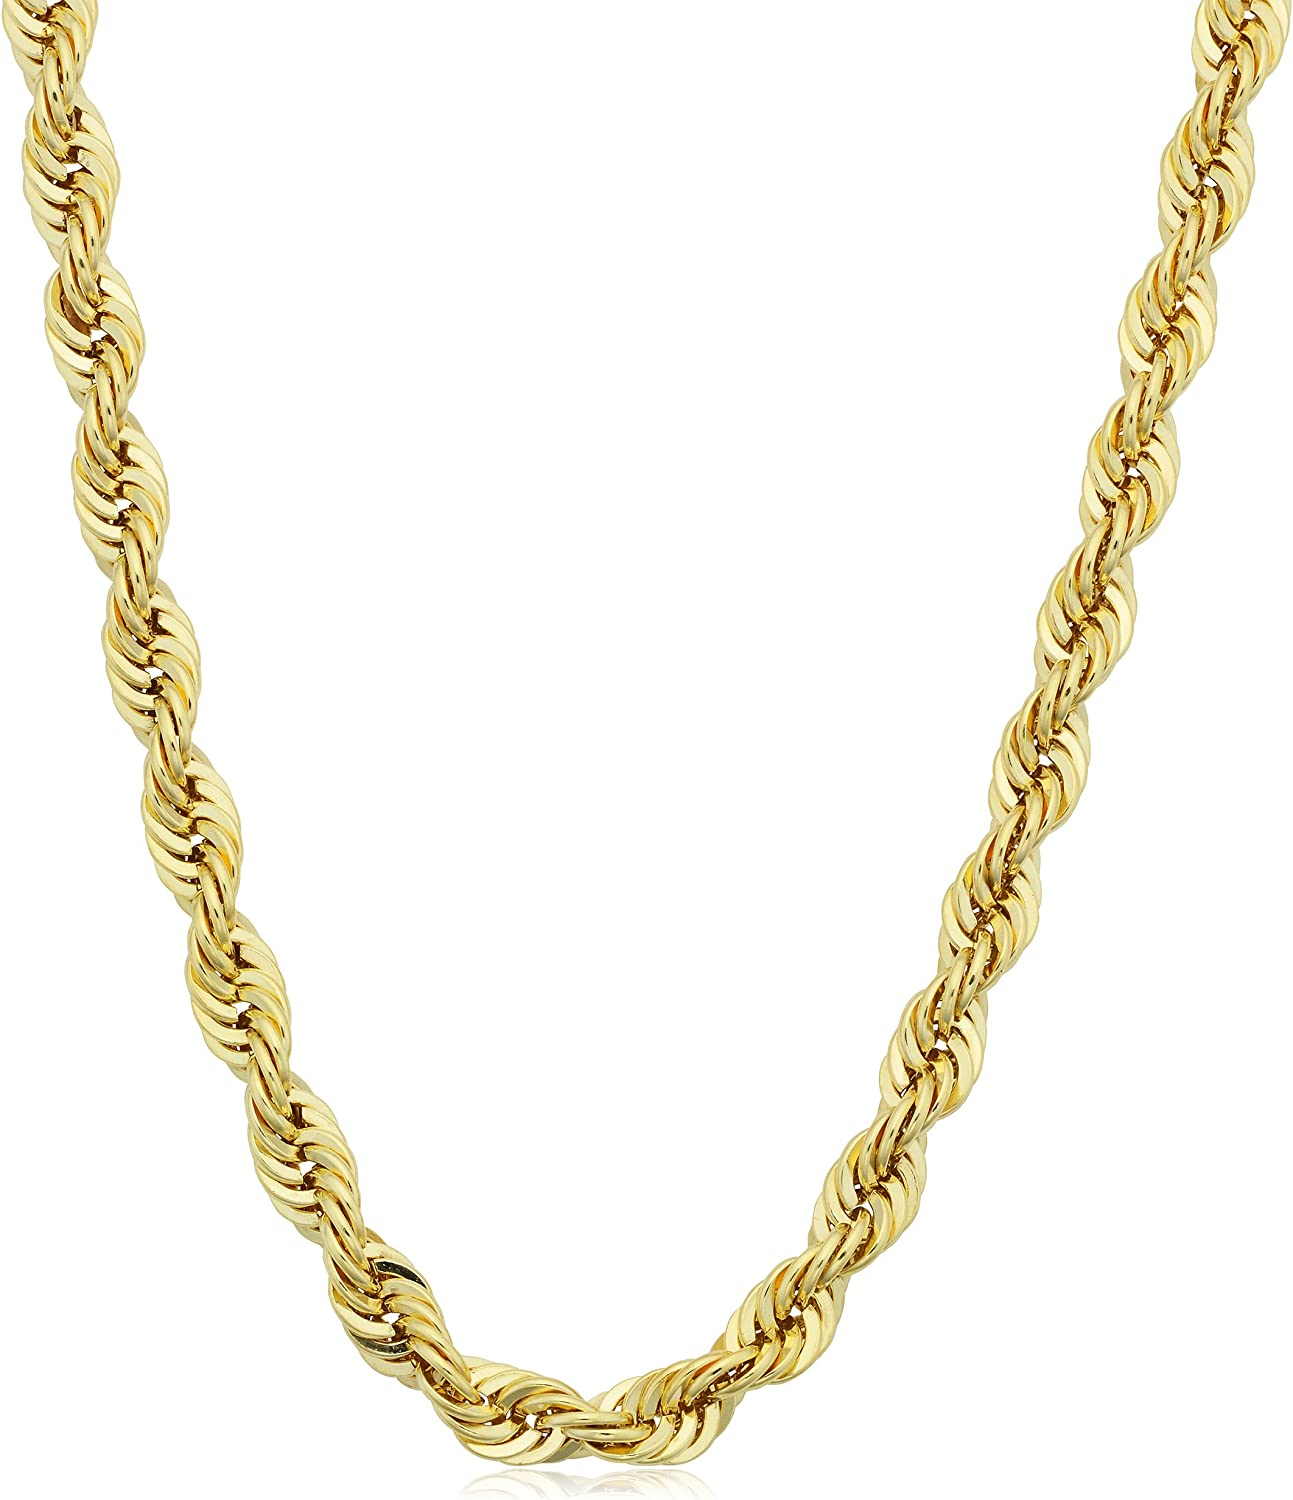 Kooljewelry 14k Yellow Gold Filled 4.2mm Rope Chain Necklace (16, 18, 20, 22, 24, 26, 30 or 36 inch)